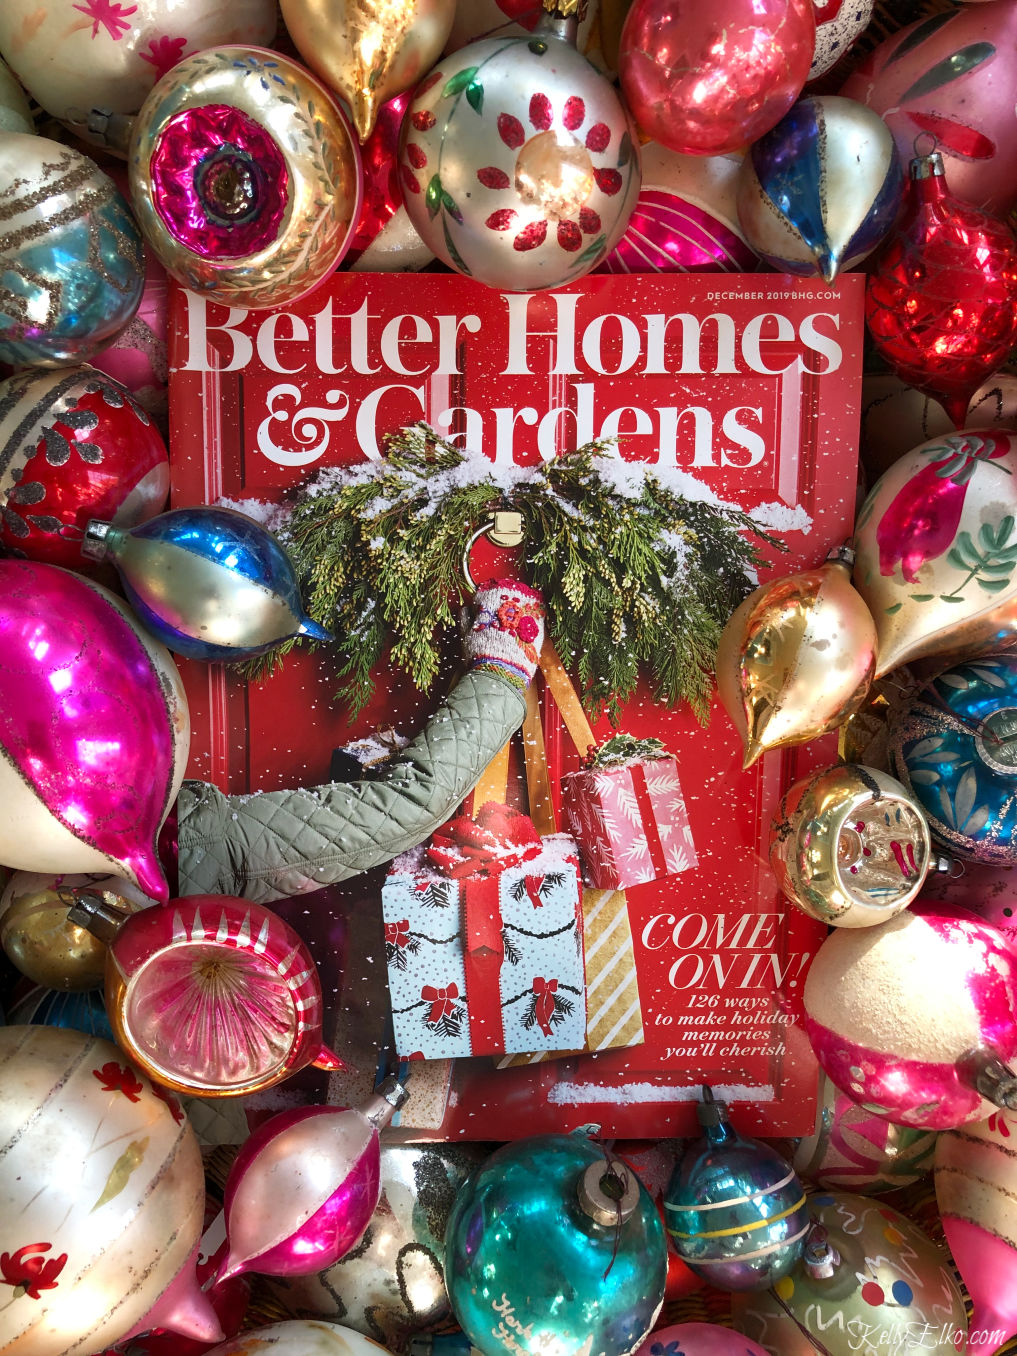 Better Homes & Gardens Christmas issue kellyelko.com #christmas #christmasdecorating #christmasdecor #shinybrites #vintageornaments #christmasornaments #bhgchristmas #kellyelko